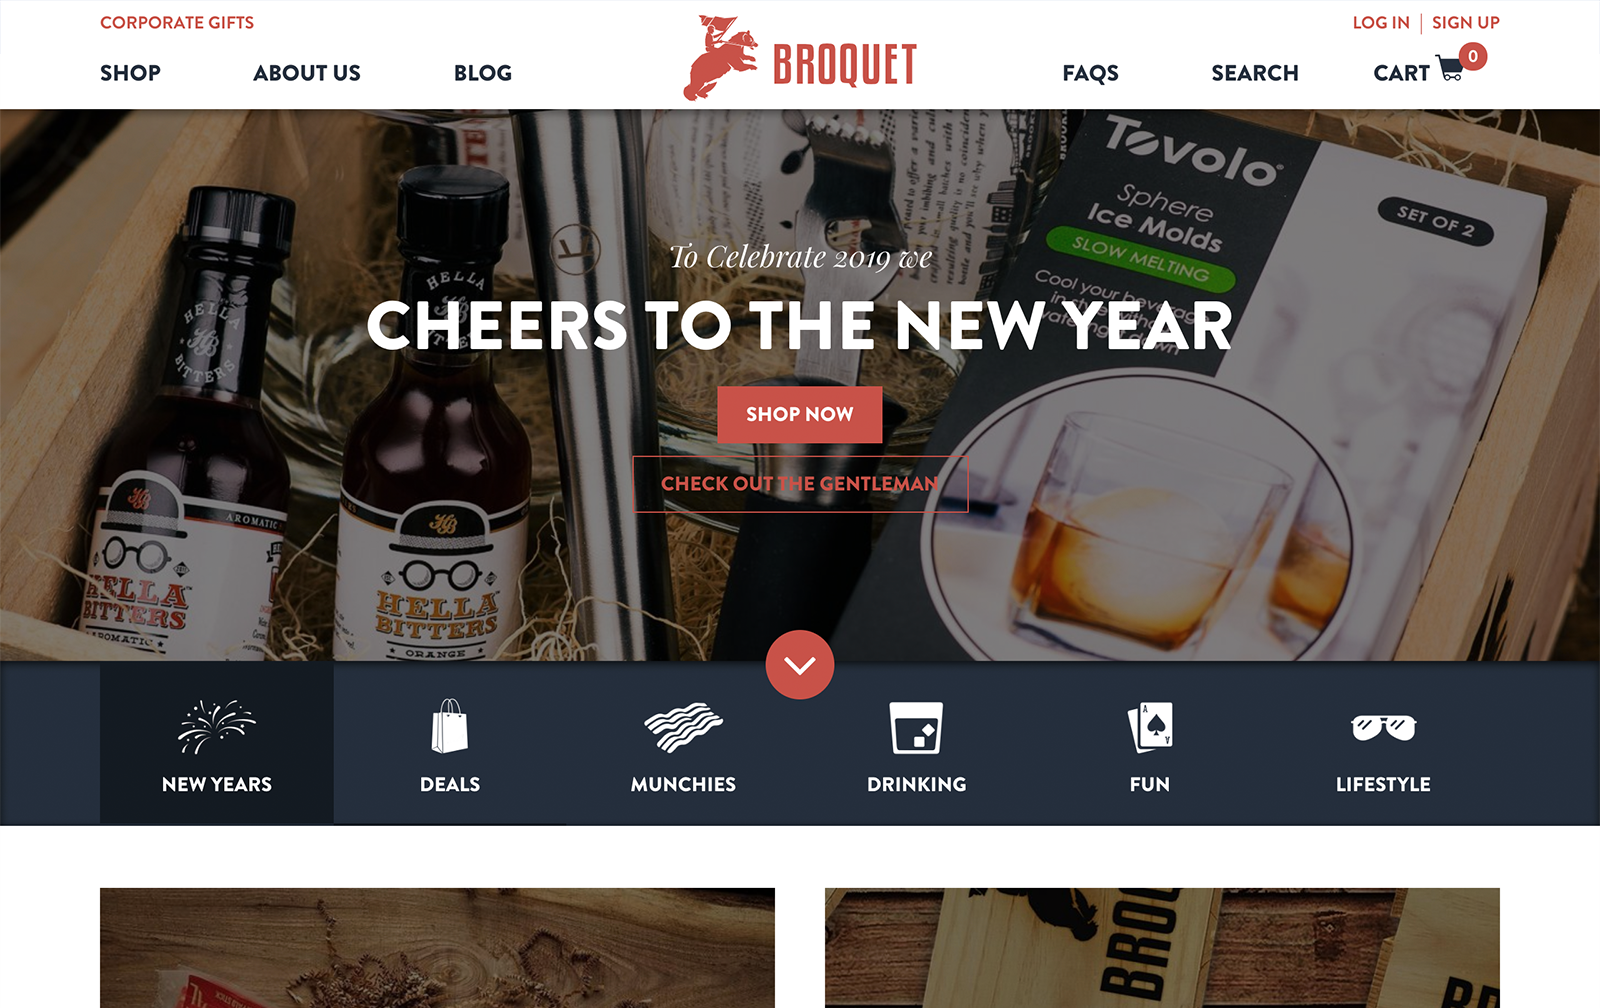 Broquet Website Desktop